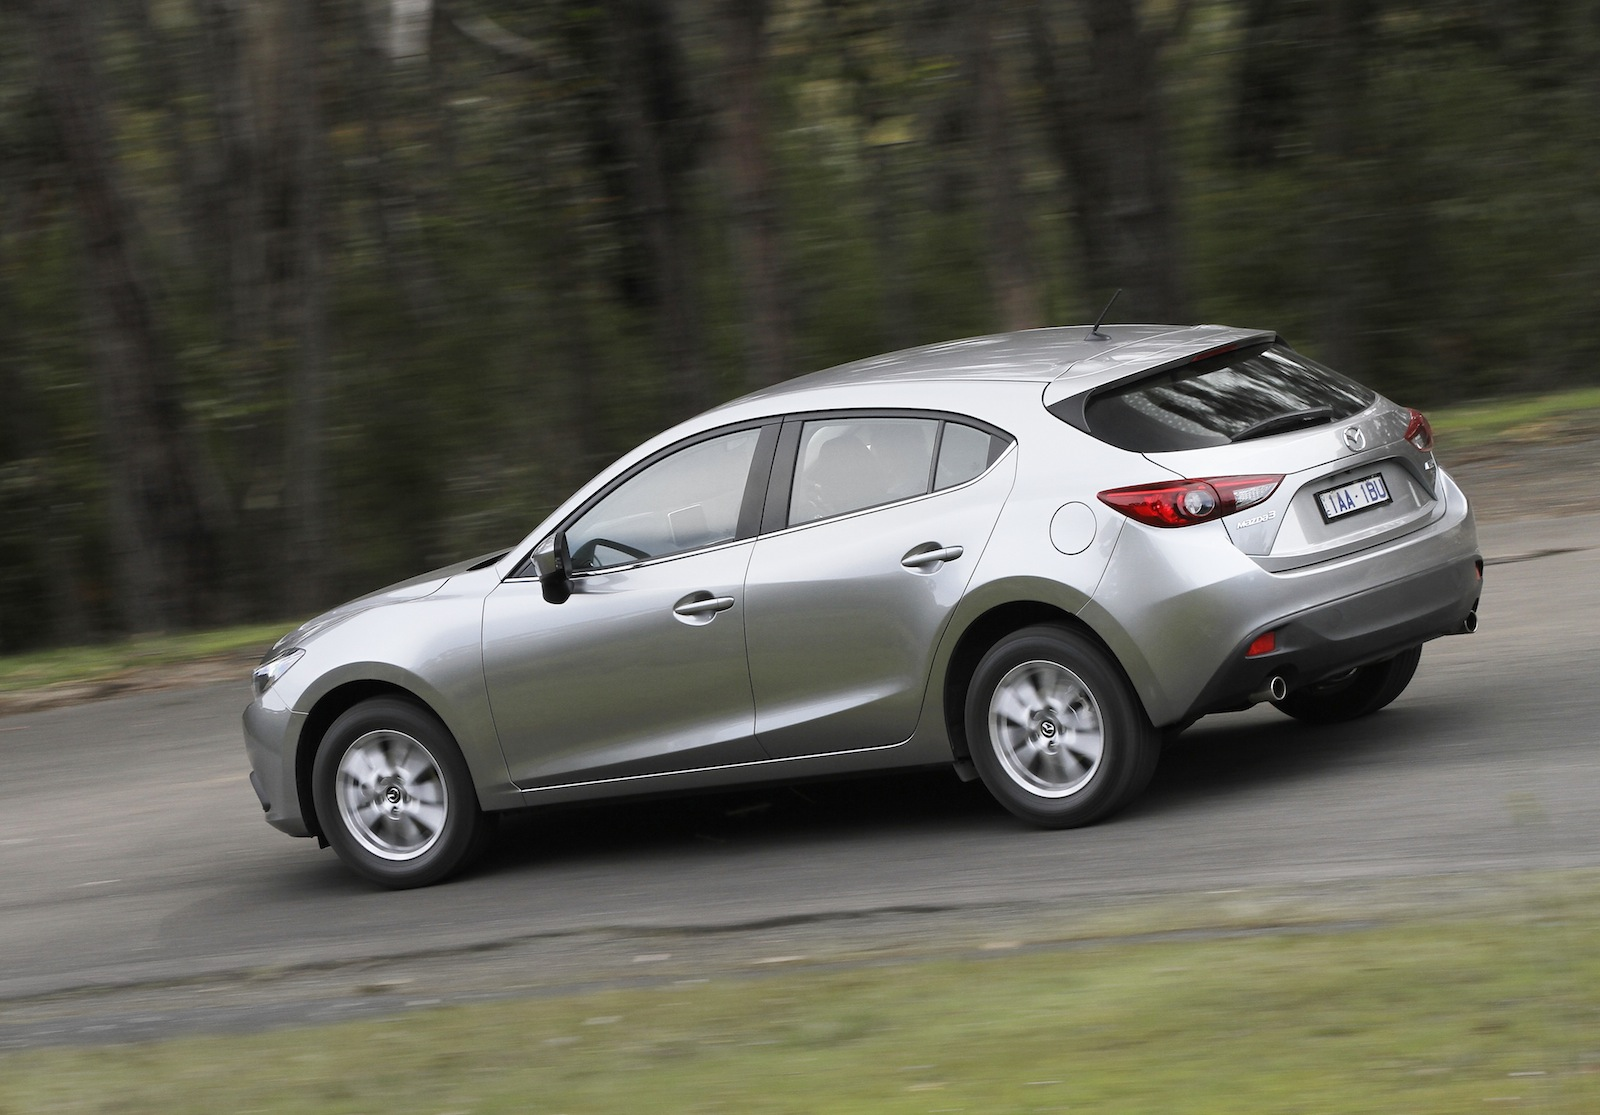 2014 Mazda 3 v old Mazda 3: Comparison Review | CarAdvice